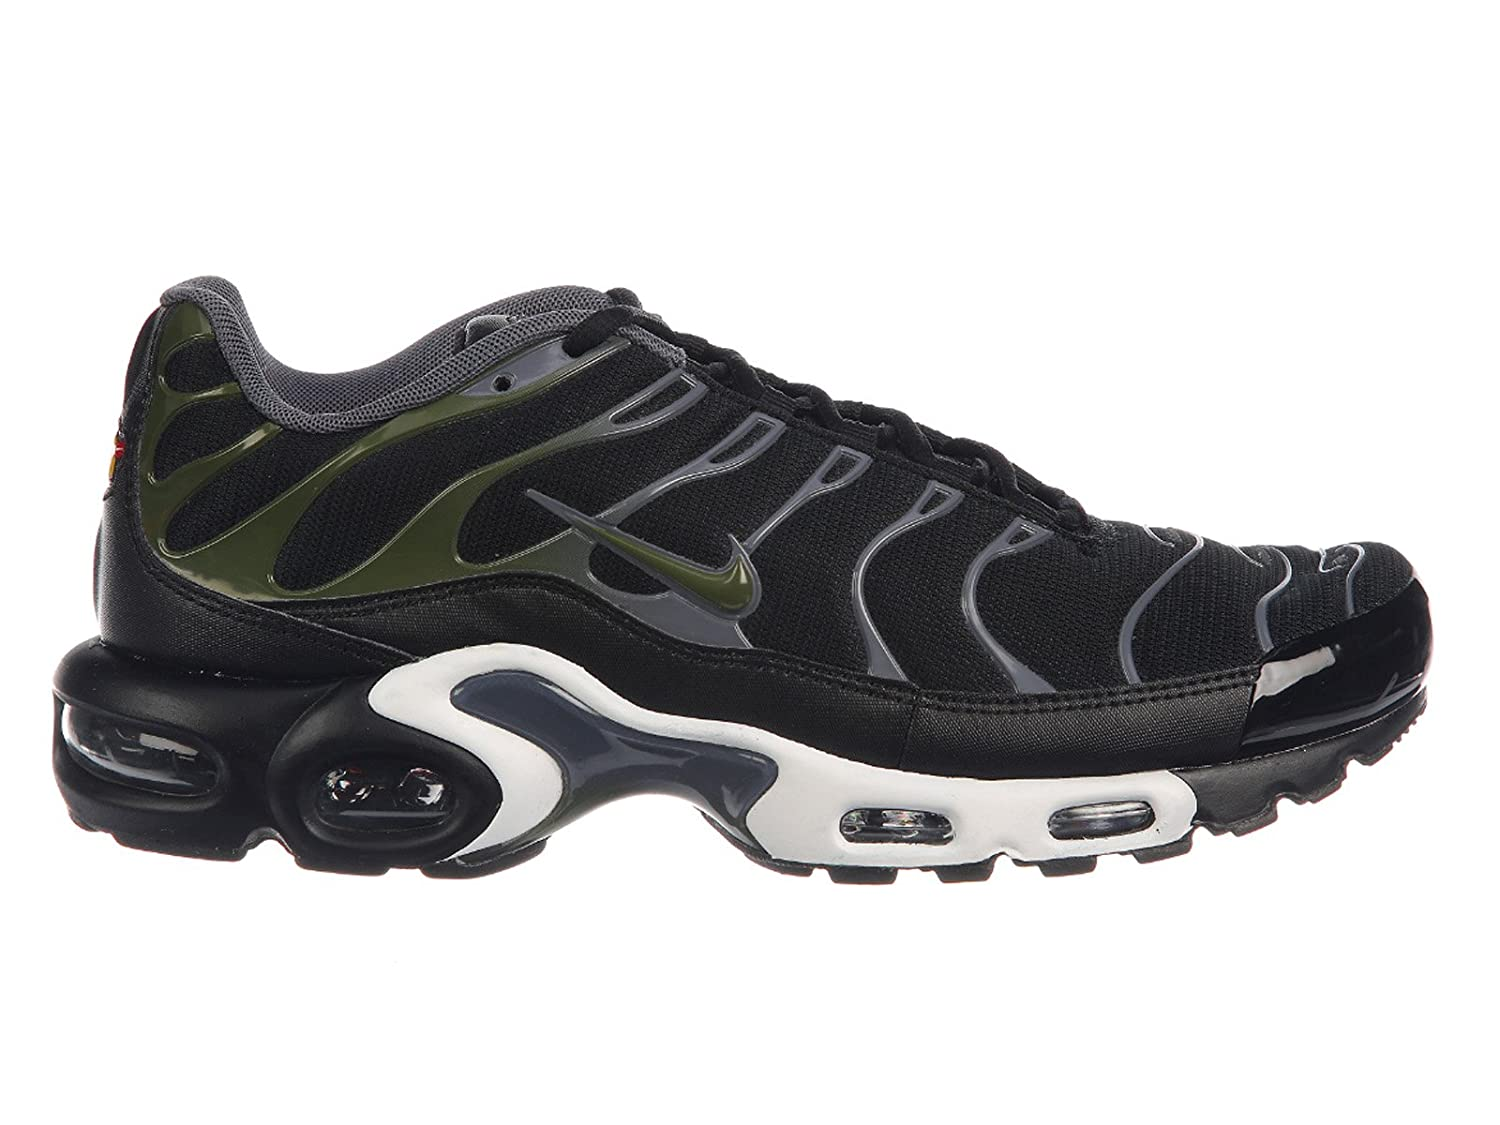 sports shoes 5c443 dc4ff Amazon.com   Nike Men s Air Max Plus Black Legion Green Dark Grey White  Nylon Cross-Trainers Shoes 11.5 M US   Fashion Sneakers